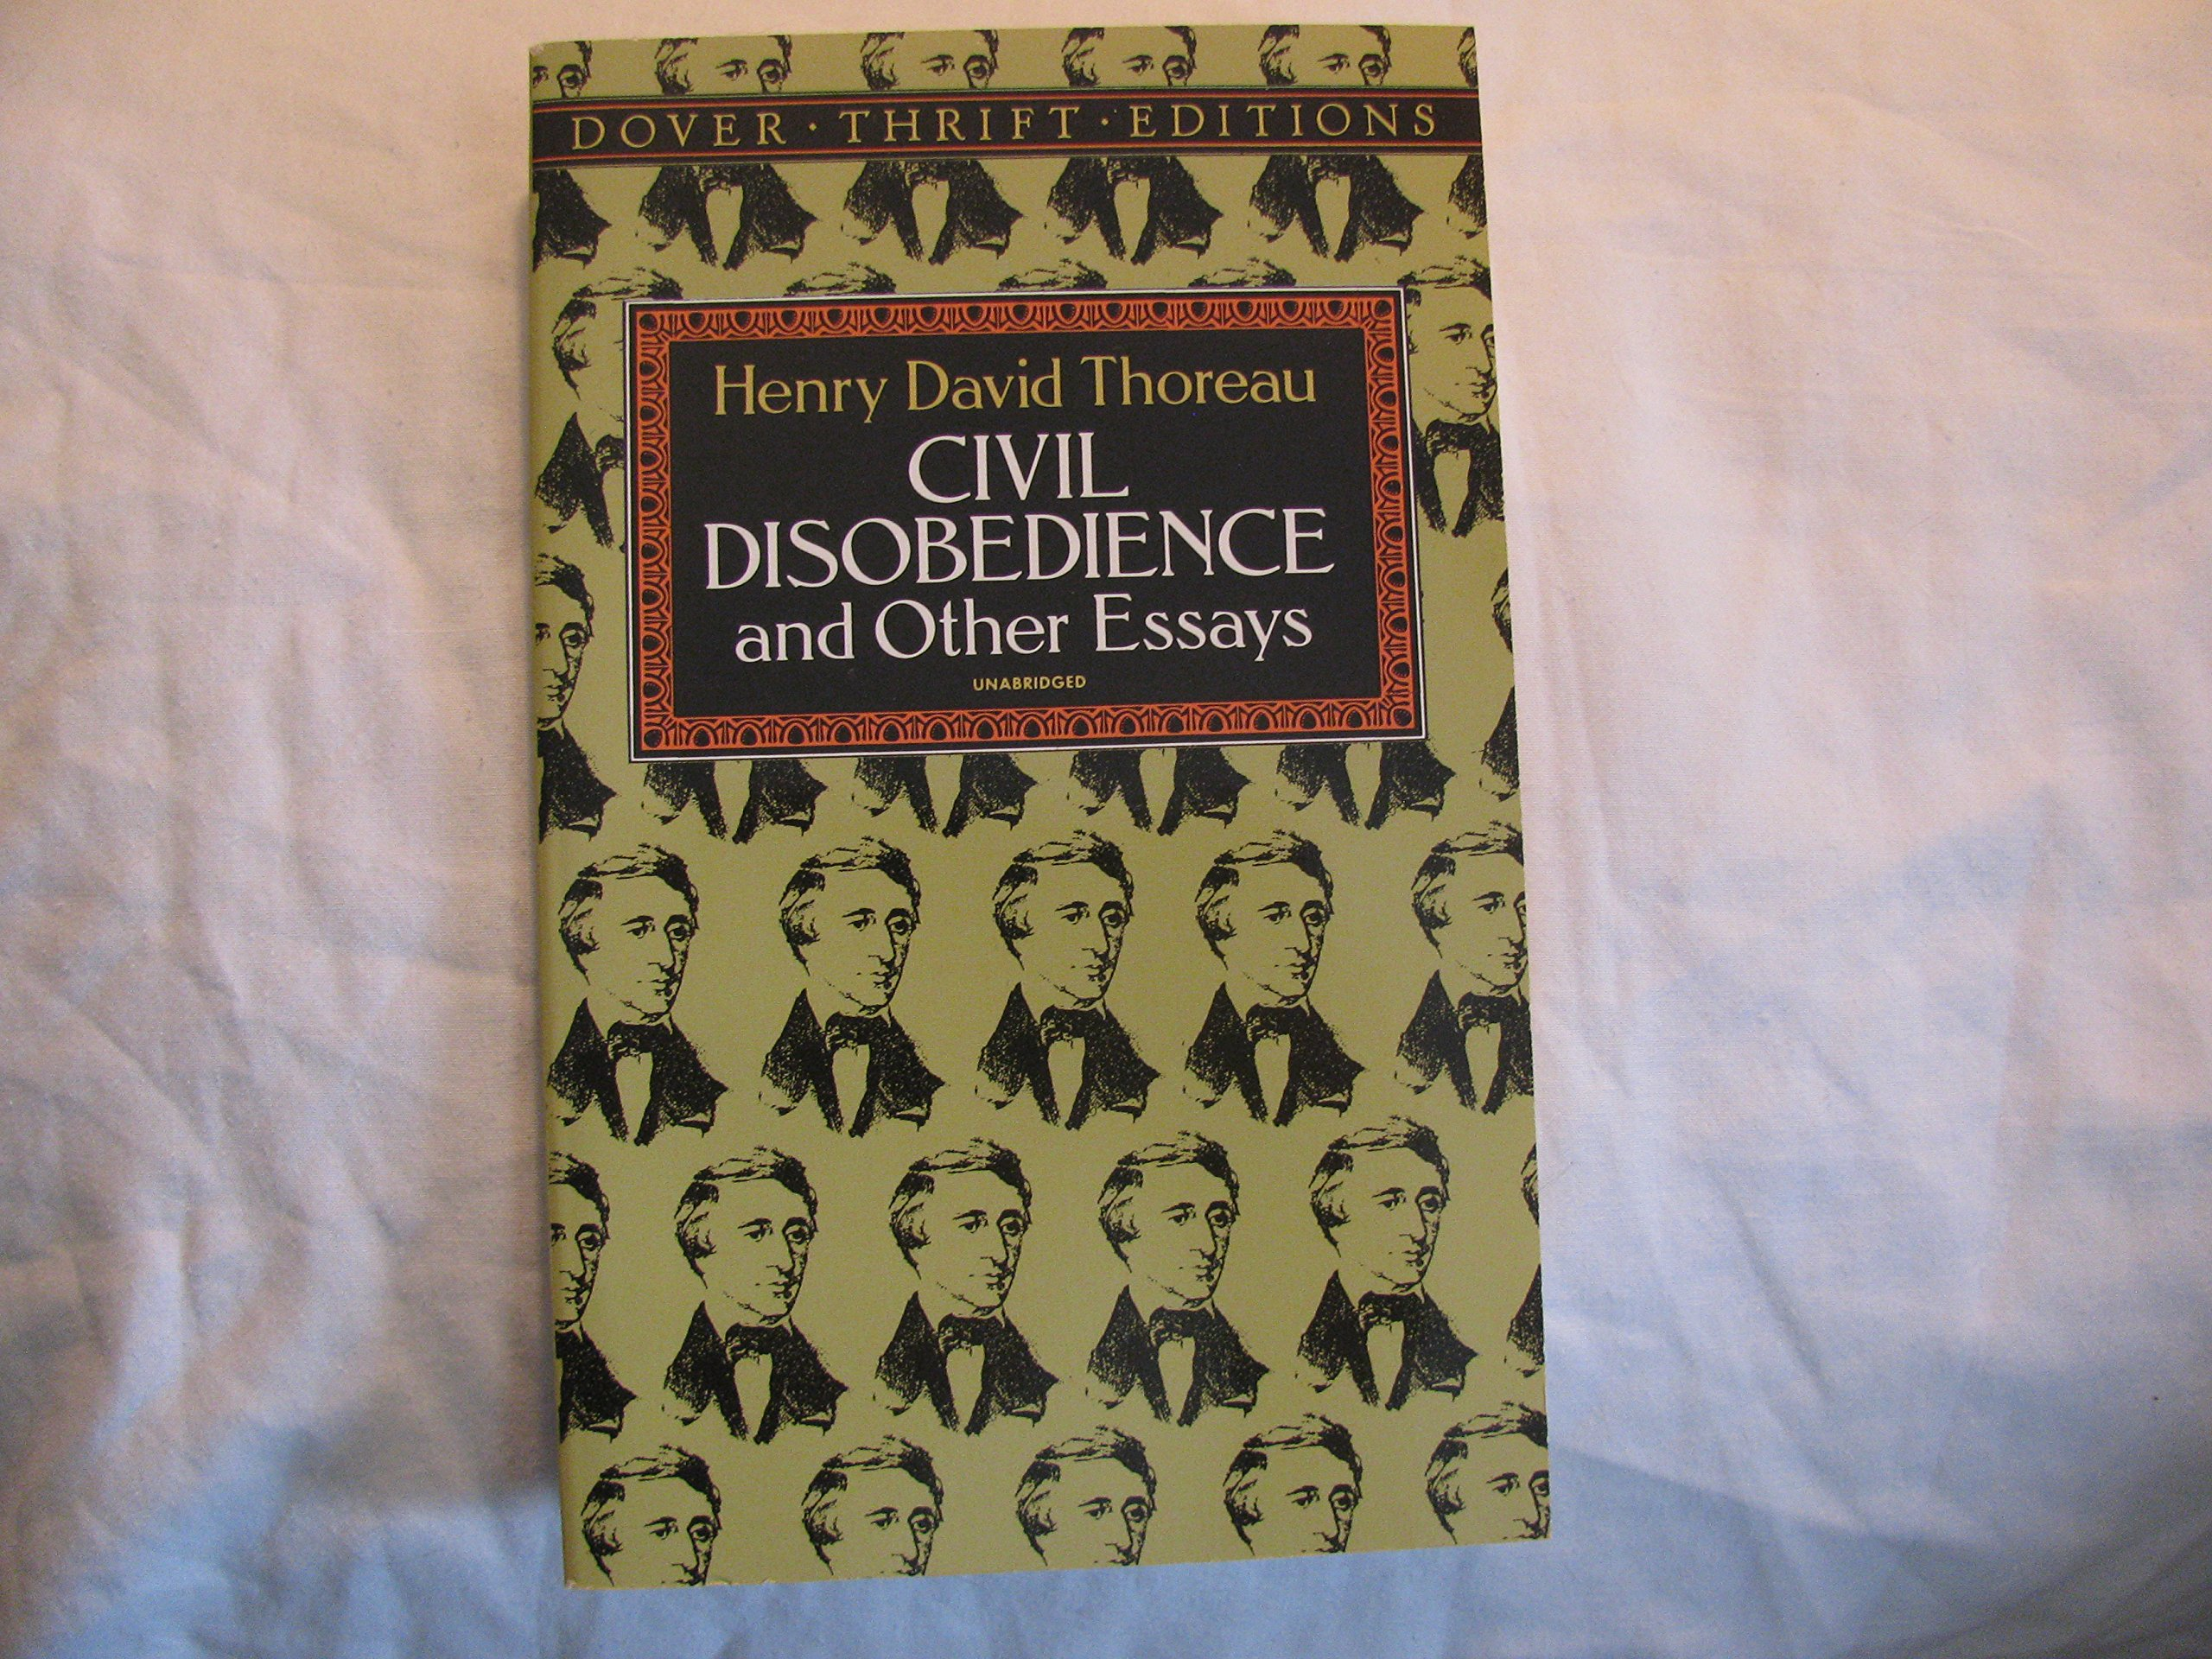 civil disobedience and other essays publisher dover publications  civil disobedience and other essays publisher dover publications henry david thoreau com books